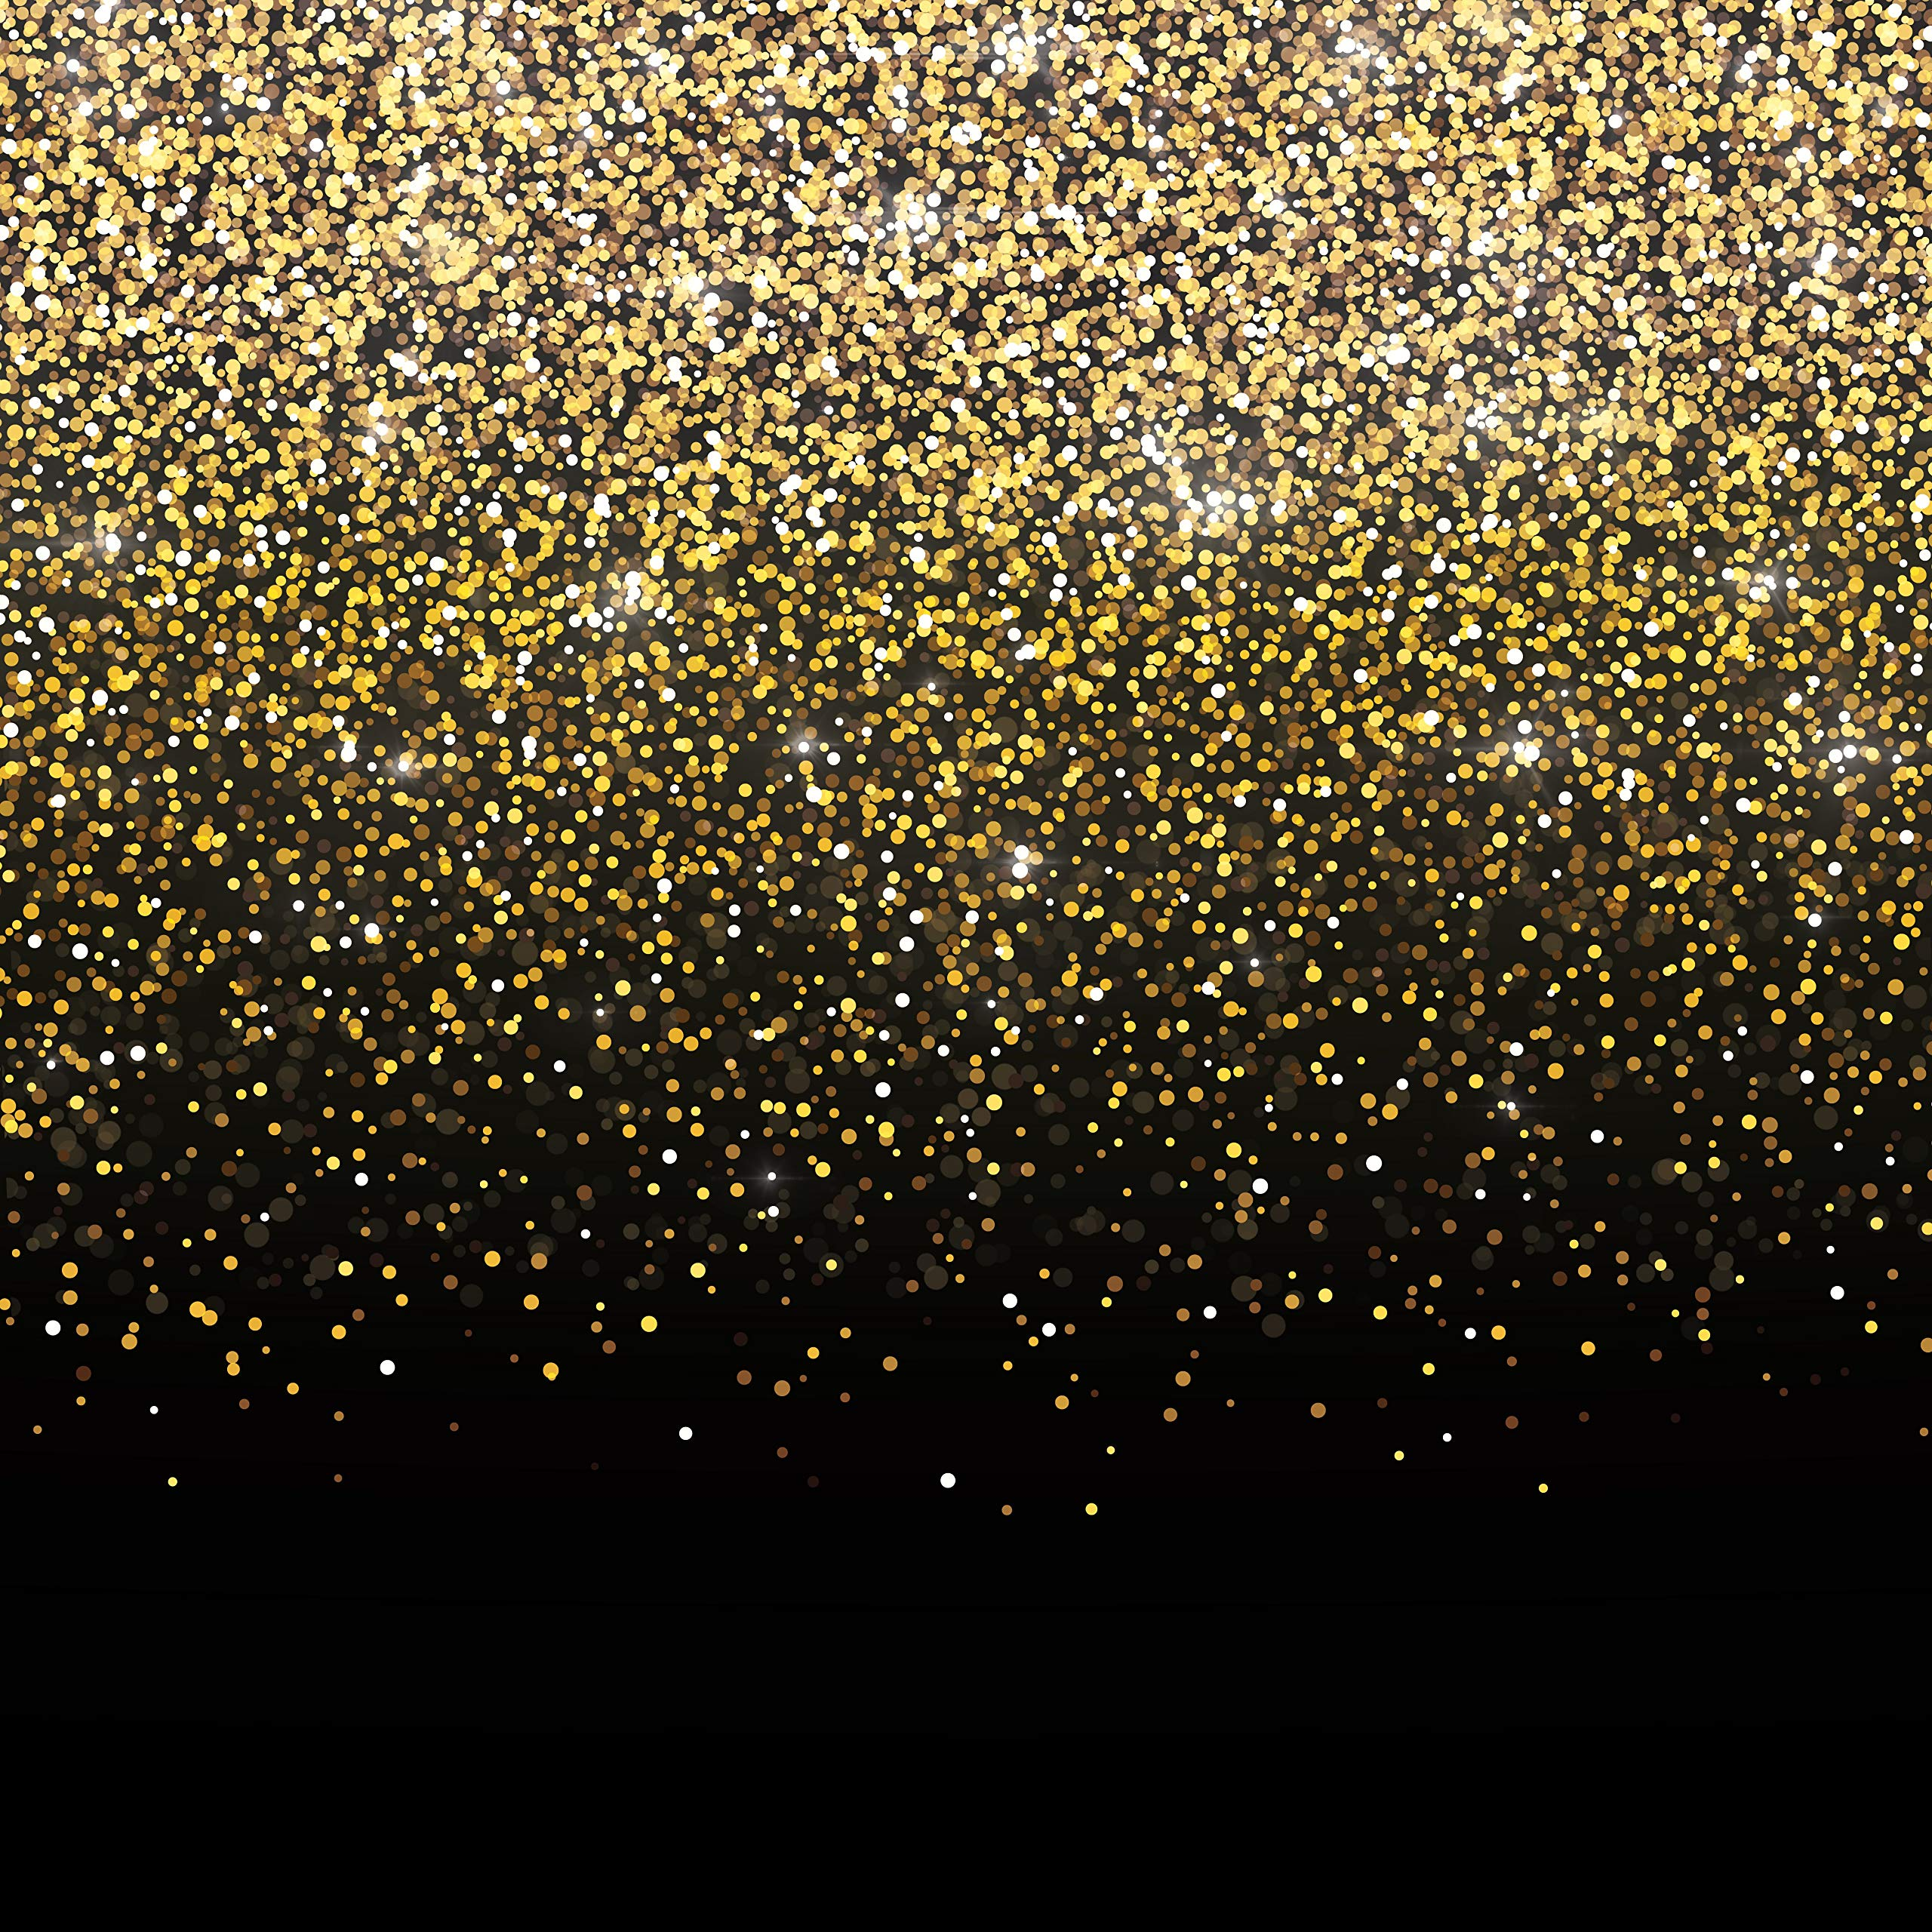 CDM product Black and Gold Photo Booth Backdrop Banner - Perfect Party Decoration for Birthday, New Year's Eve, Bachelorette, Weddings, Christmas (6ft x 6ft) big image